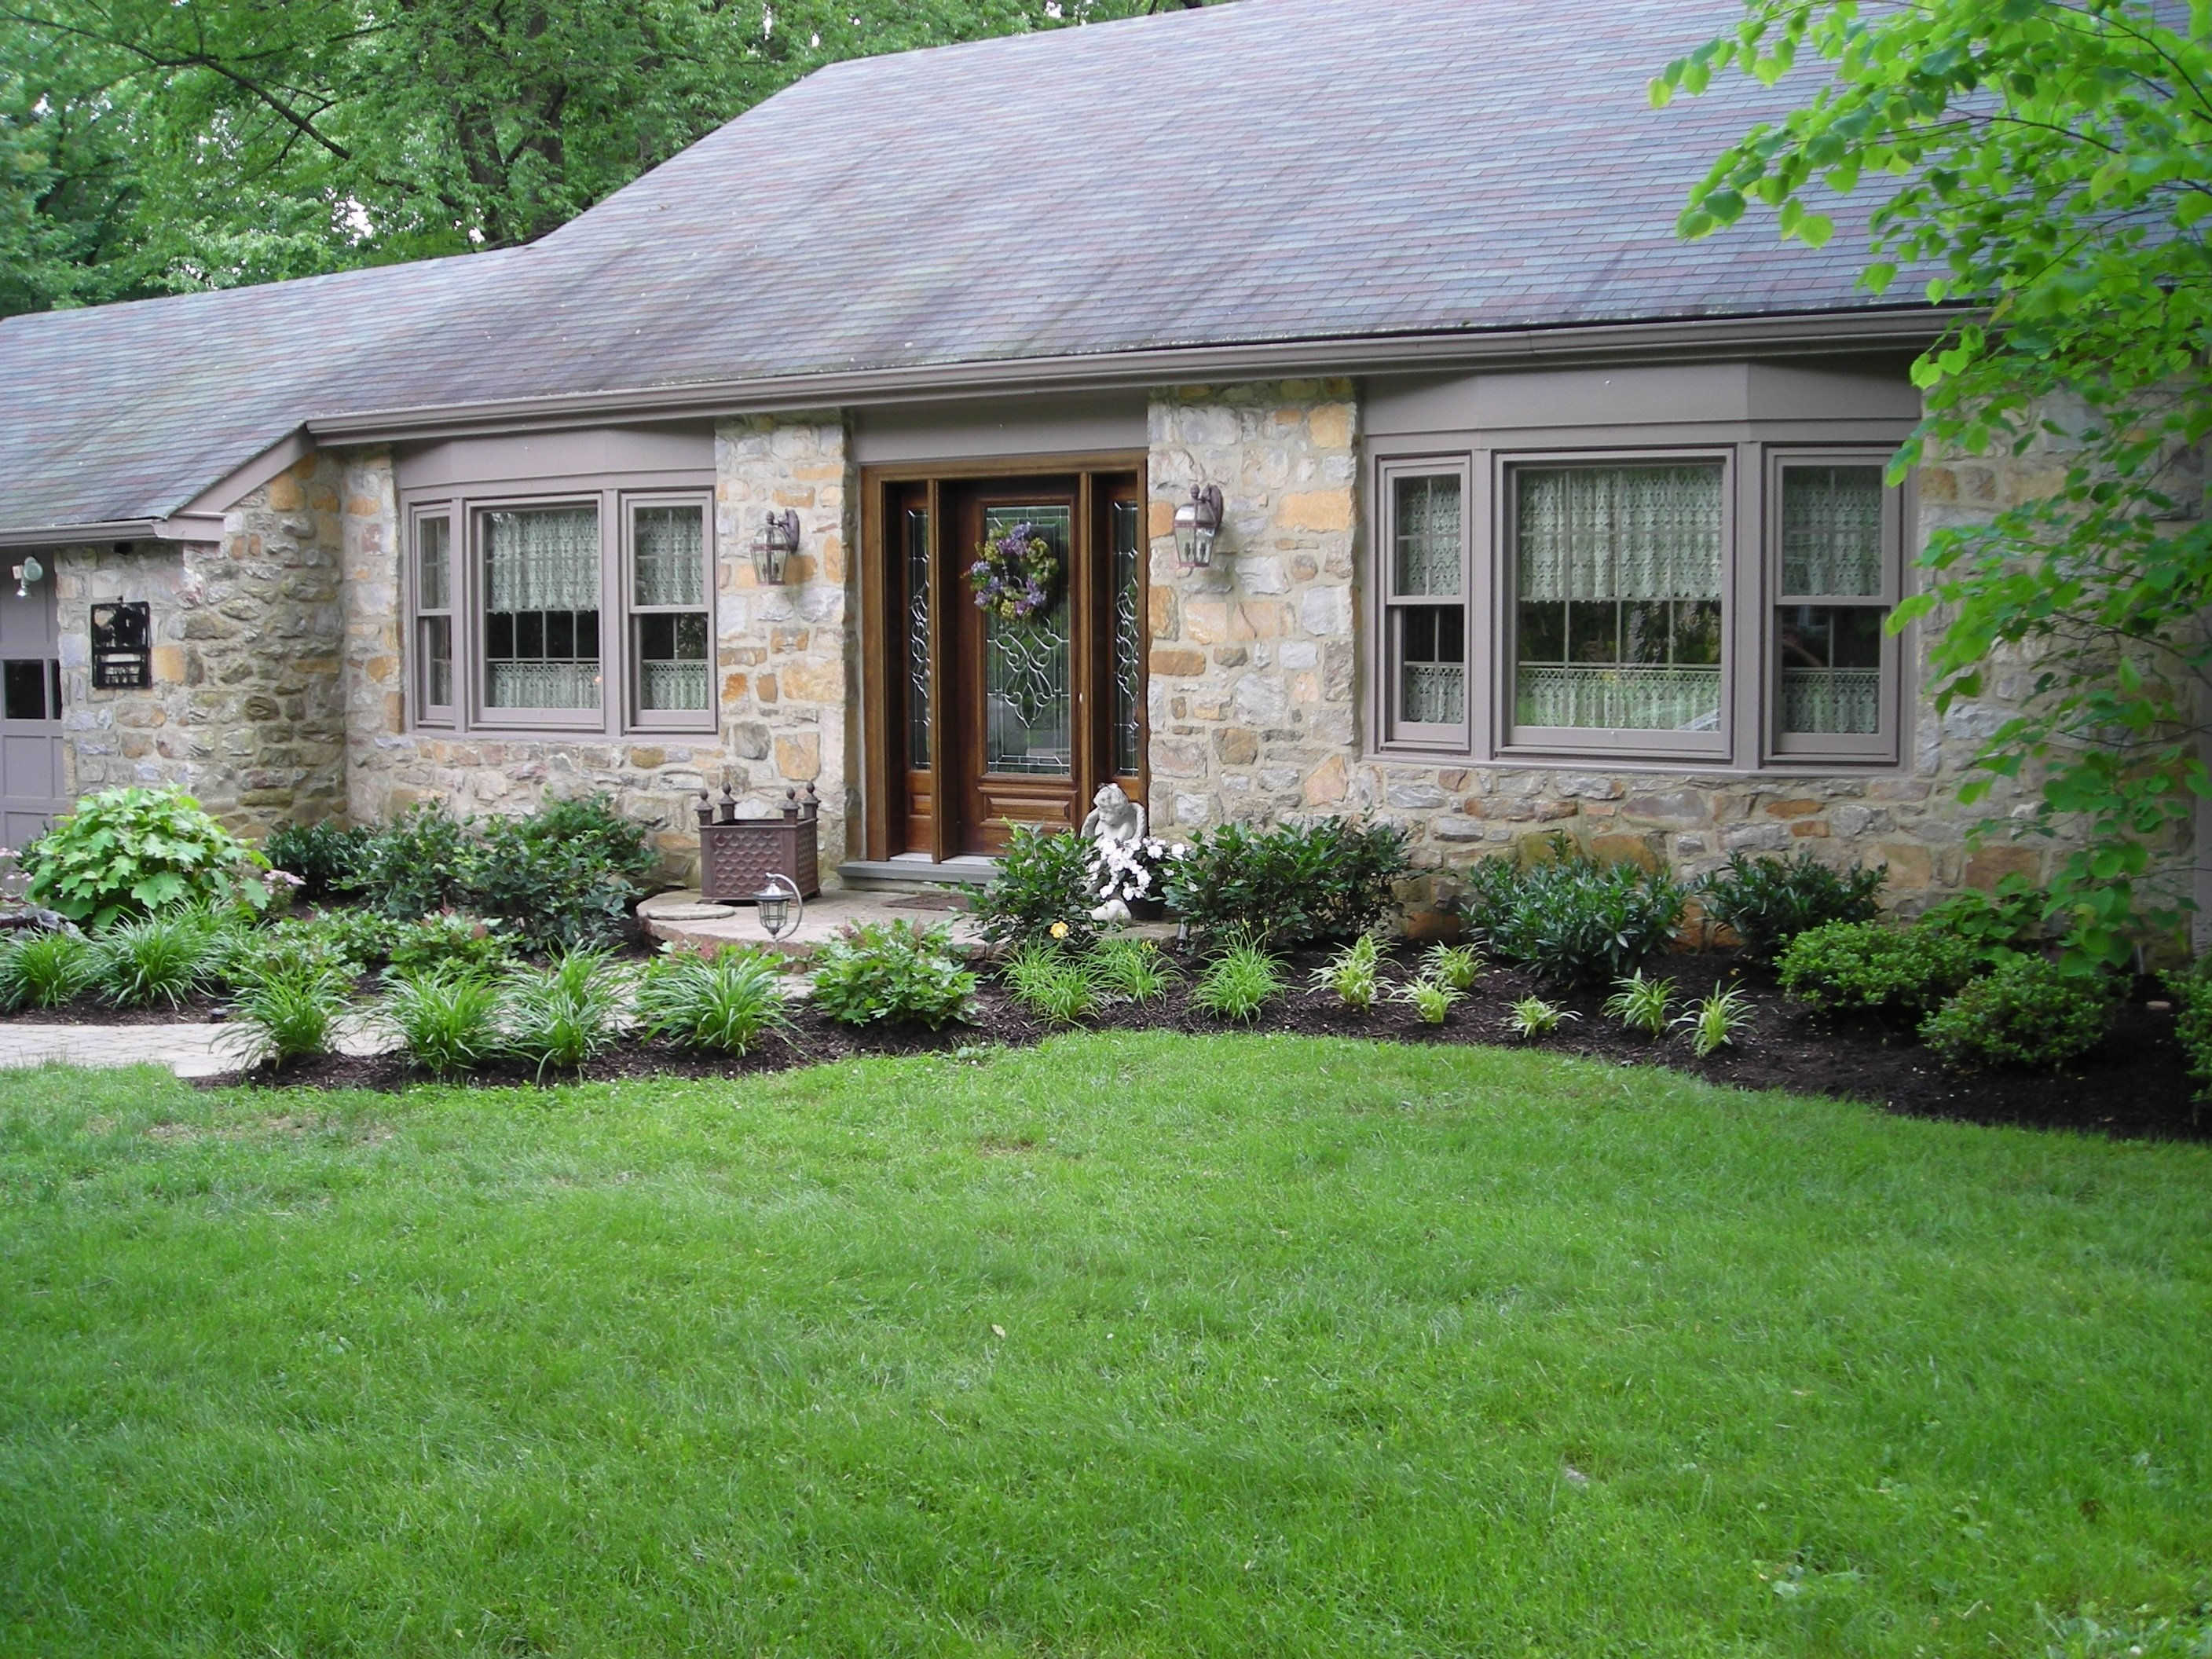 10 Spectacular Front Yard Landscaping Ideas For Small Homes extraordinary front yard landscaping ideas for small homes images 2021